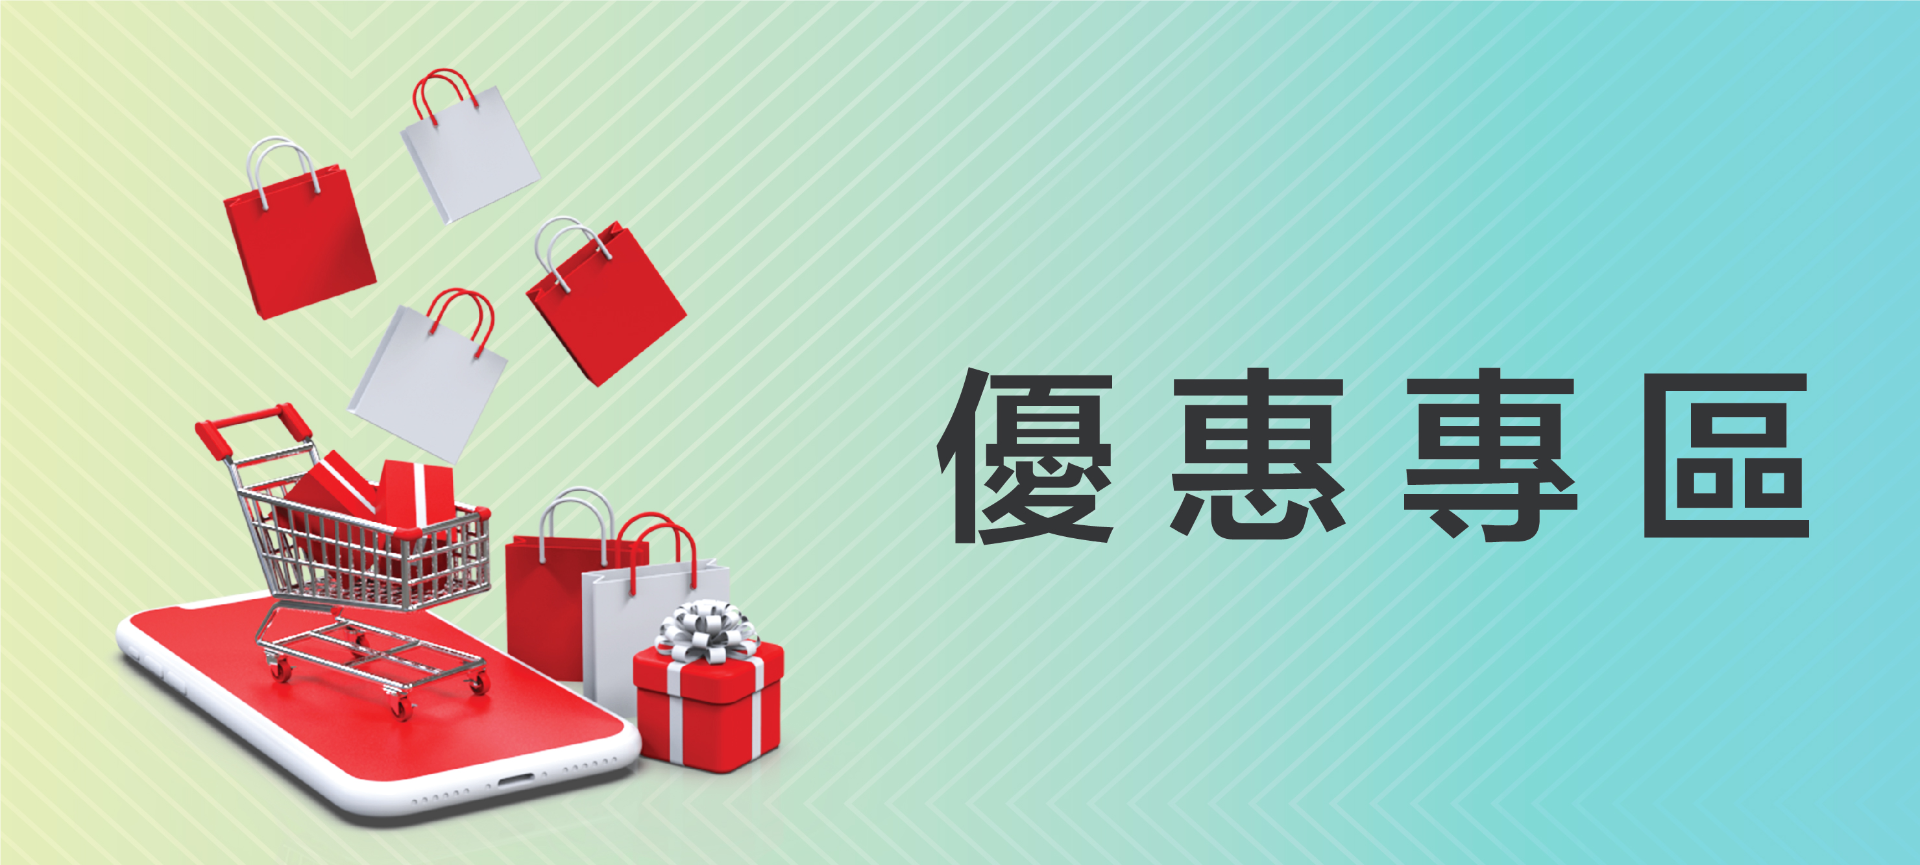 Mobile promotion product